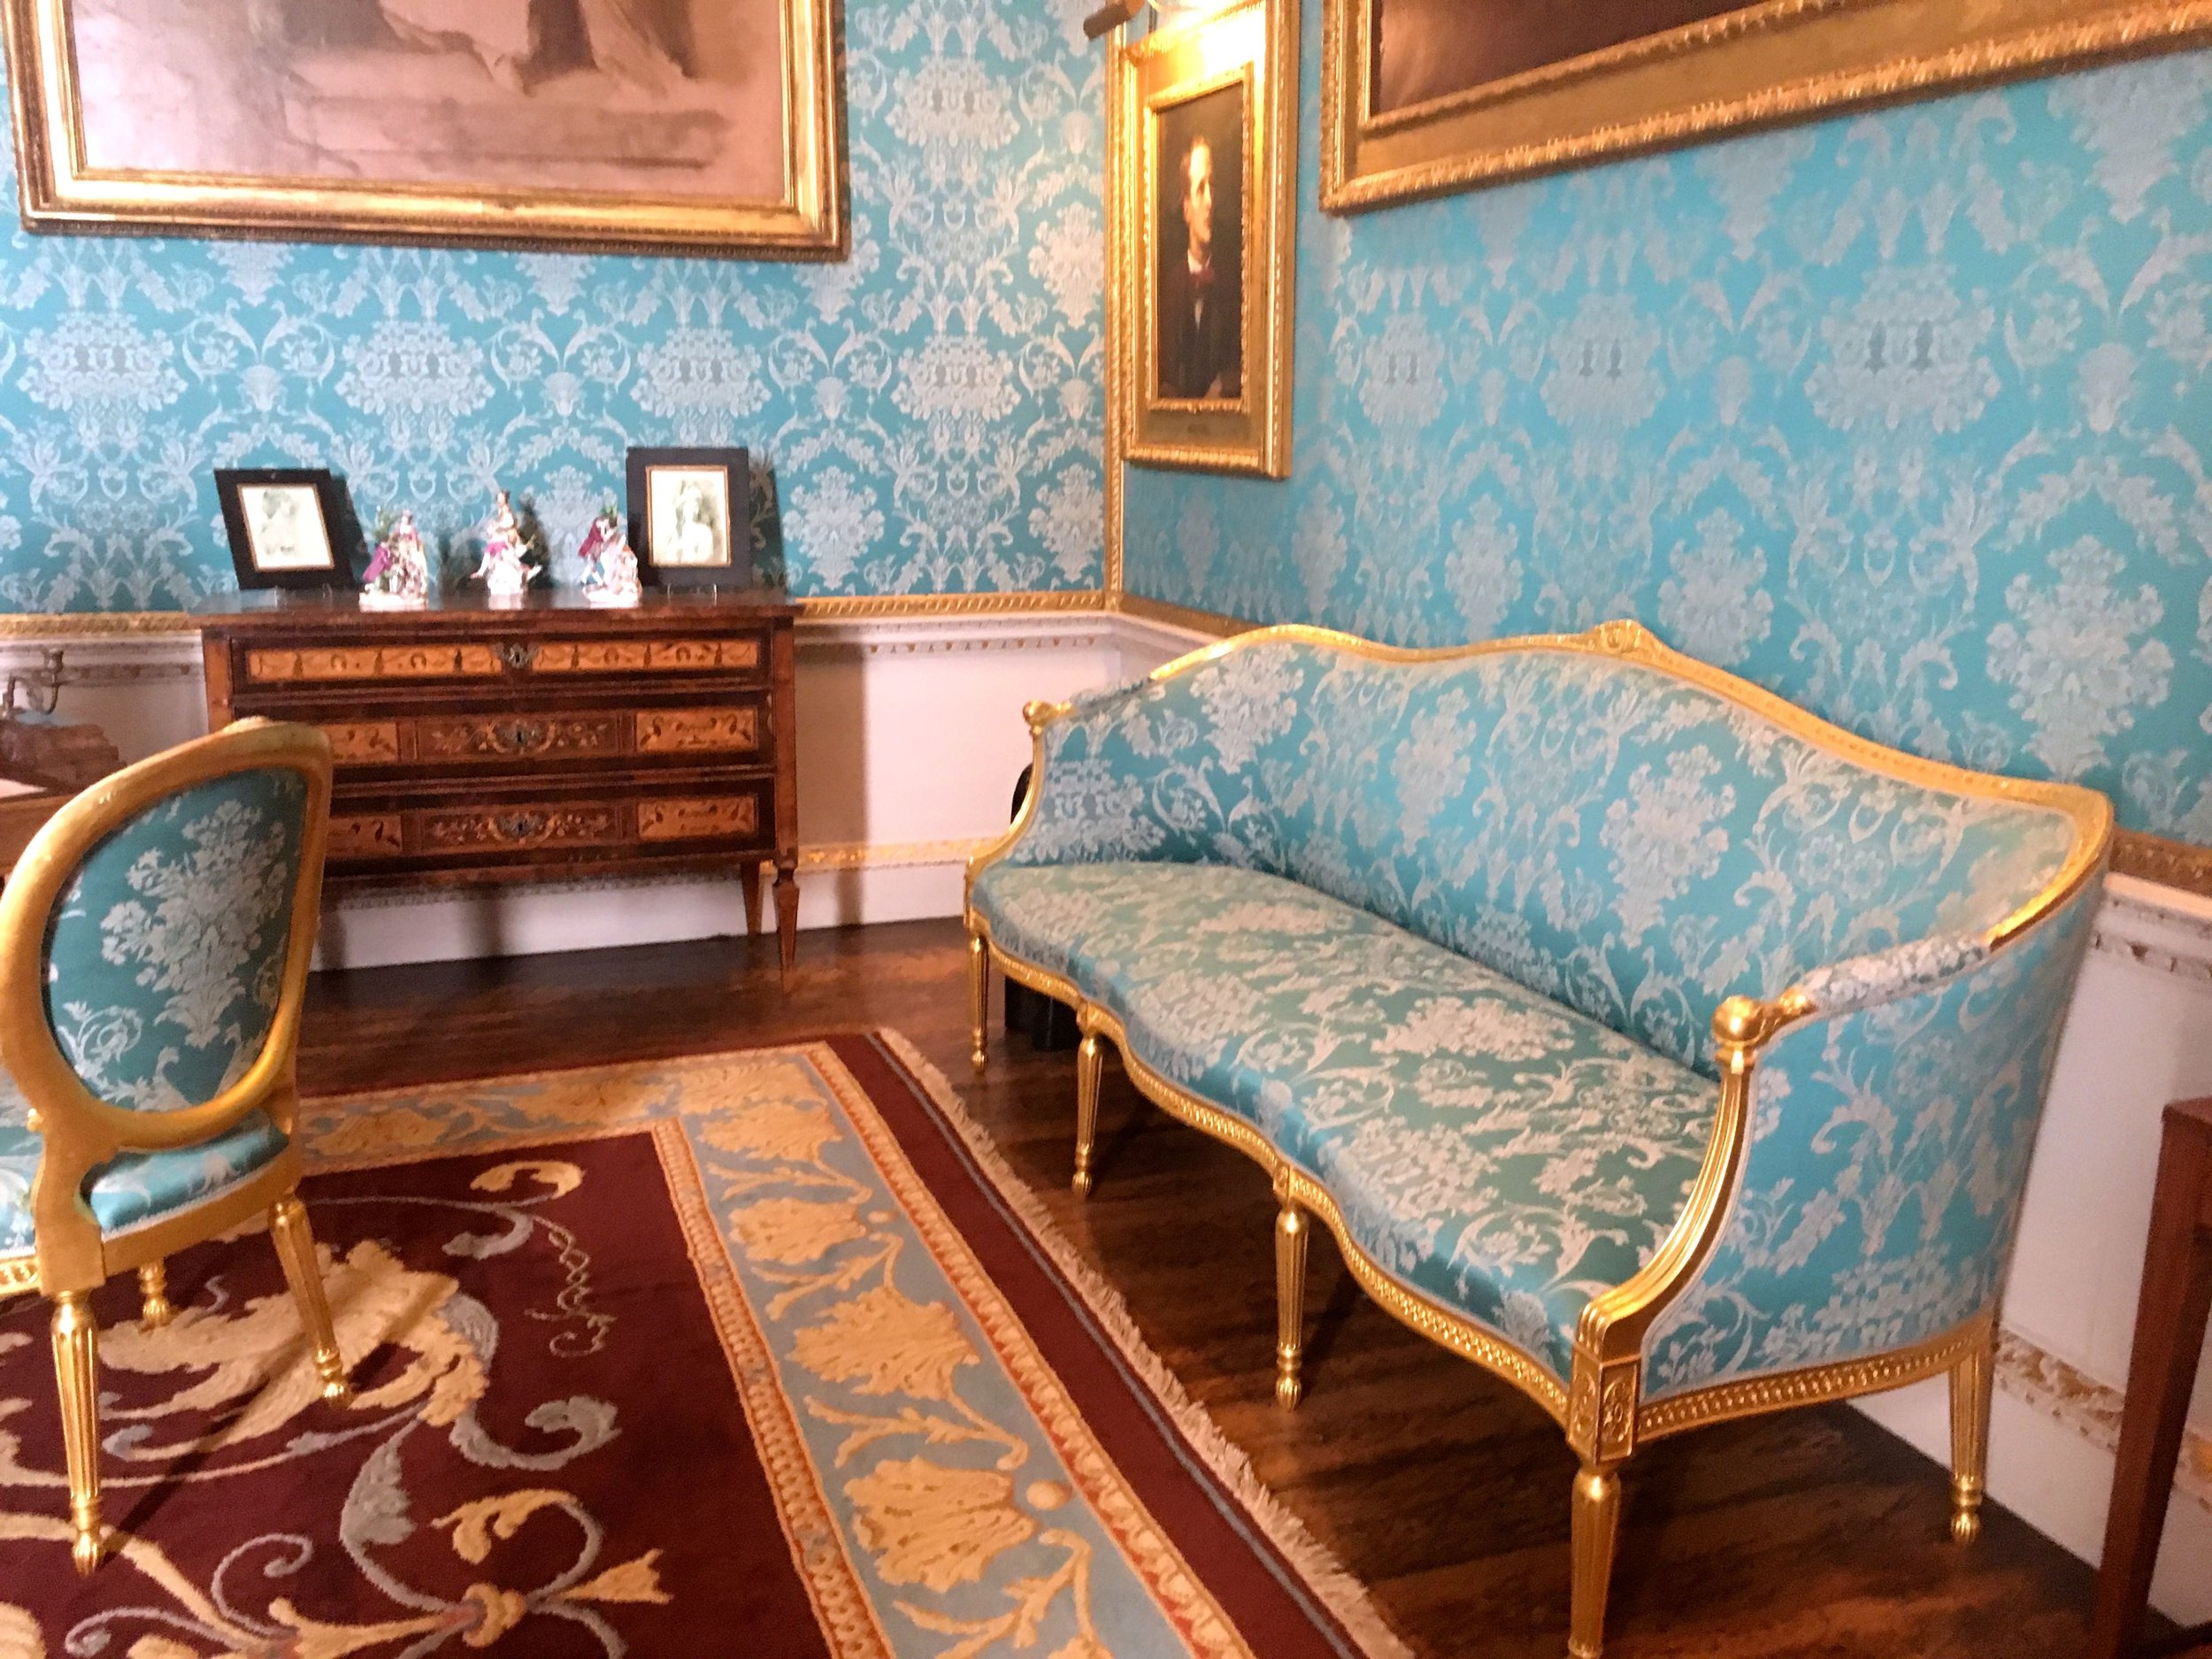 Turquoise and gold upholstered furniture and walls